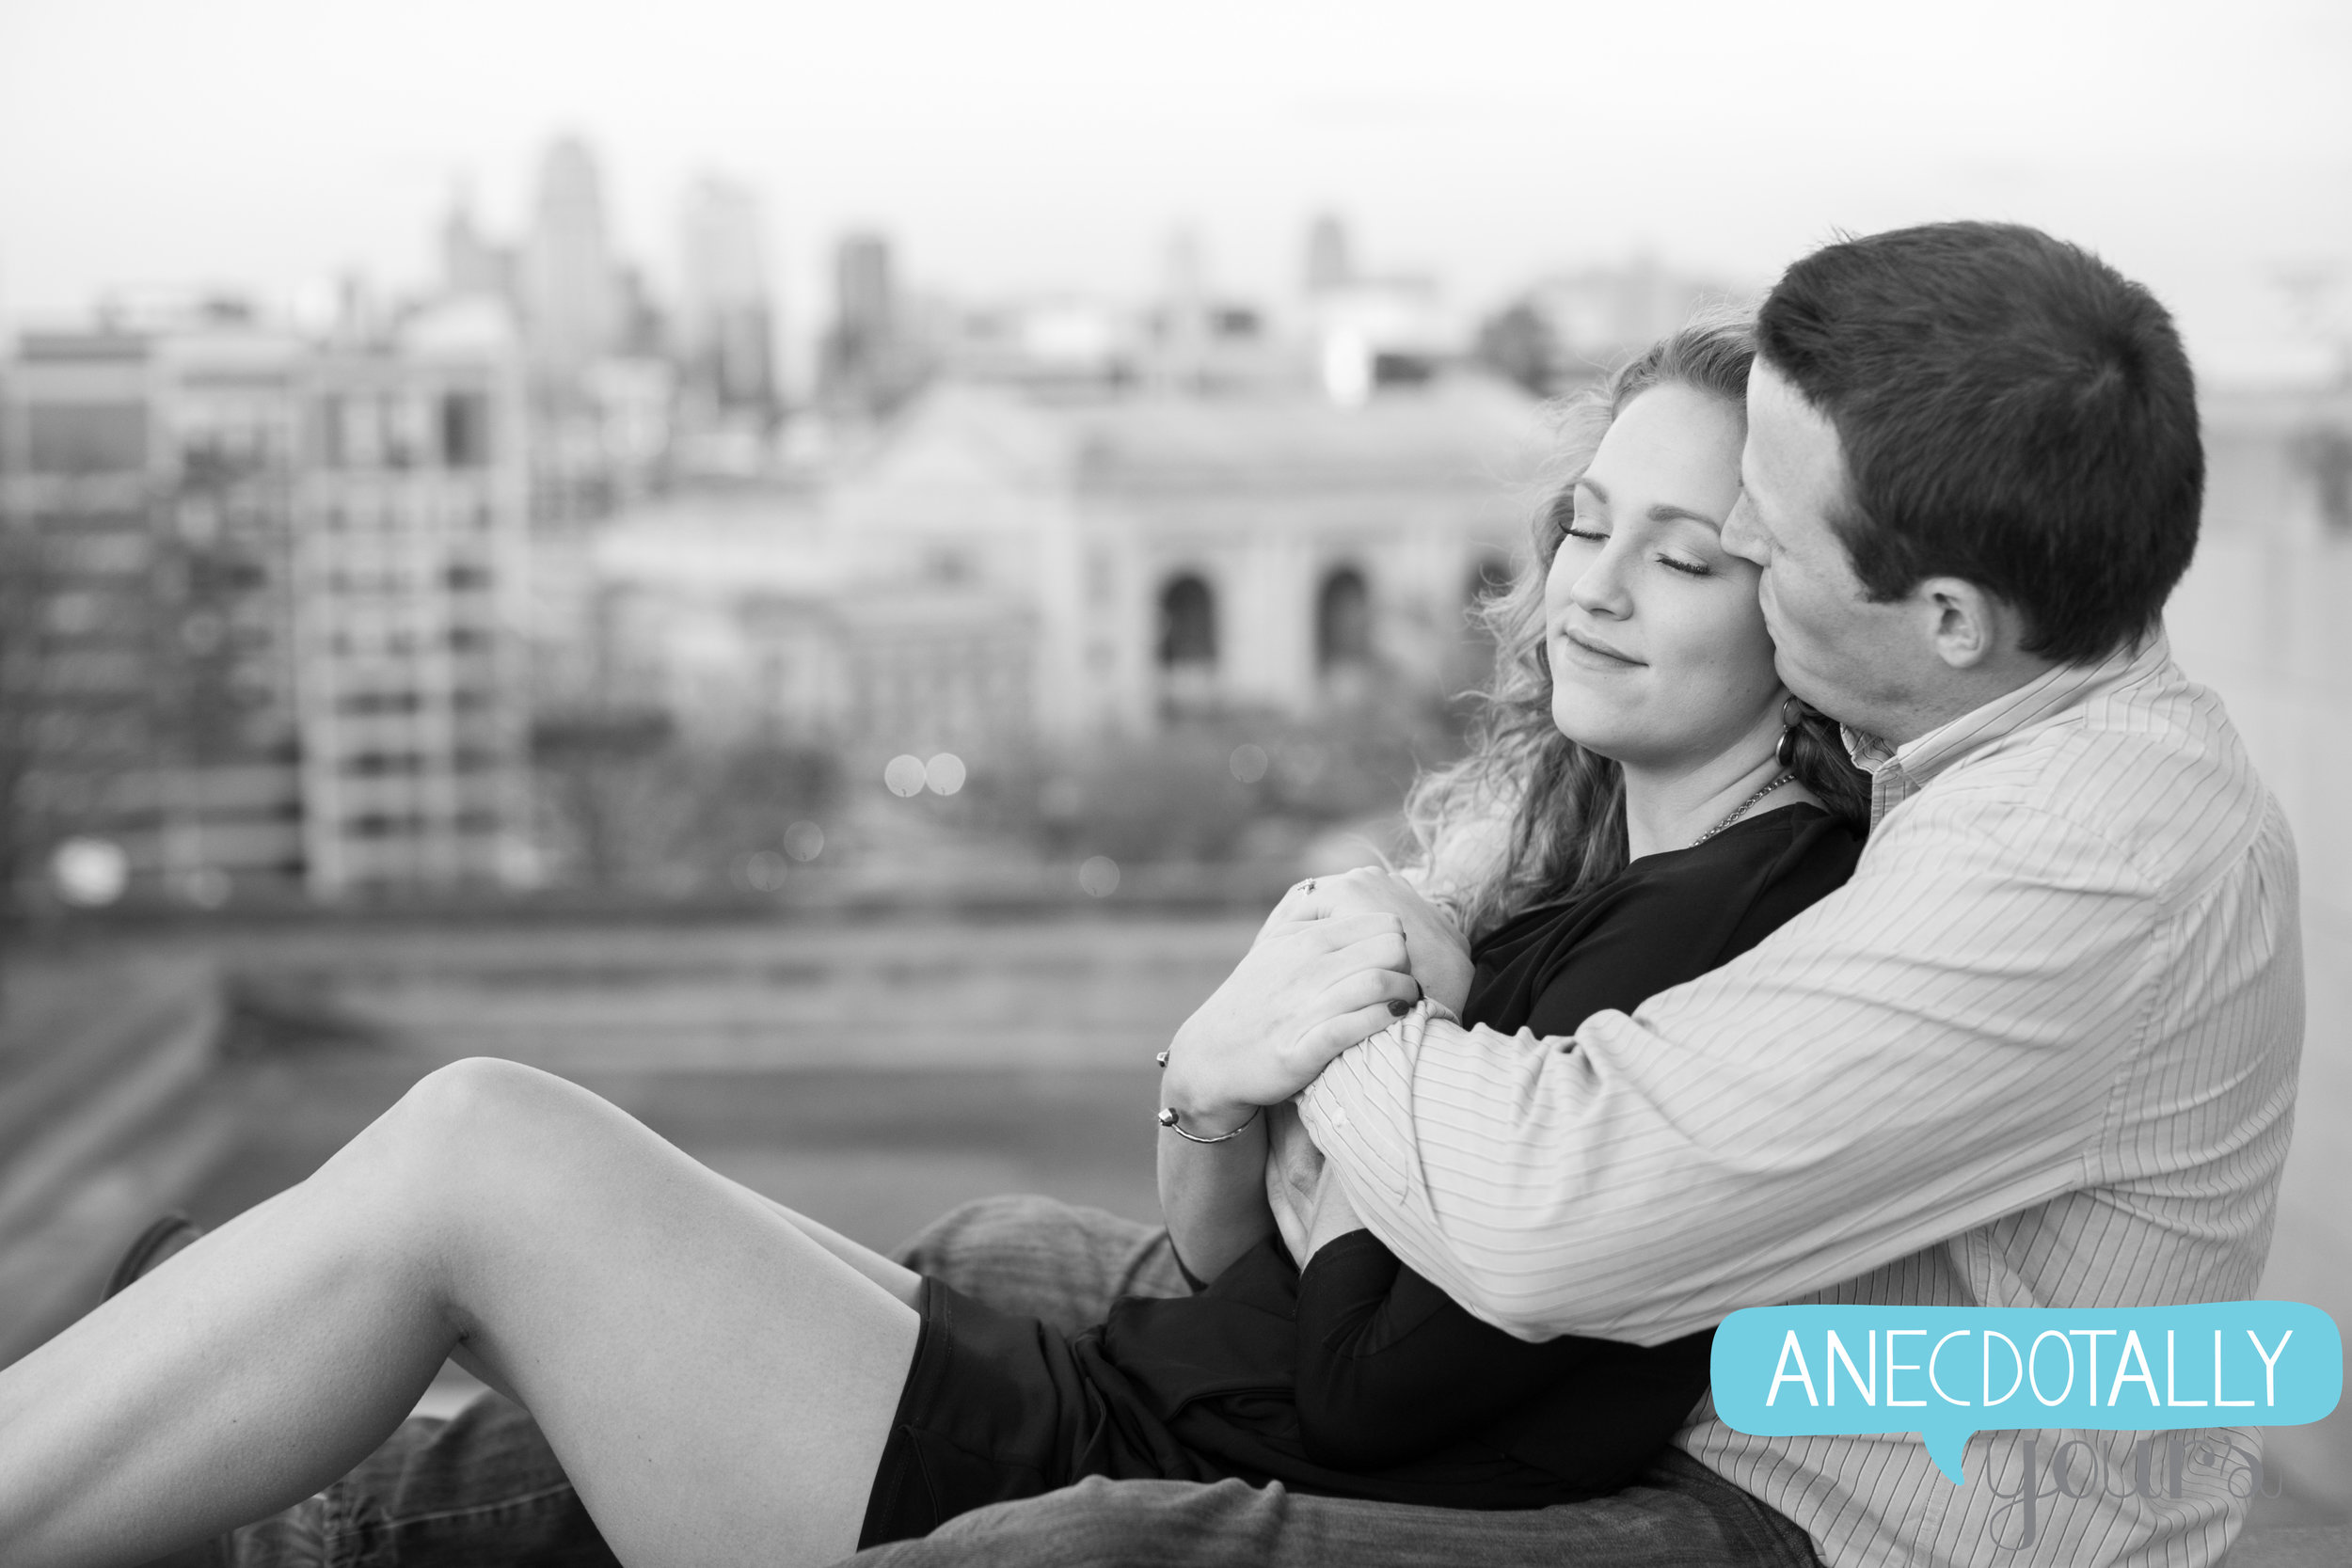 maile-patrick-engagement-19.jpg